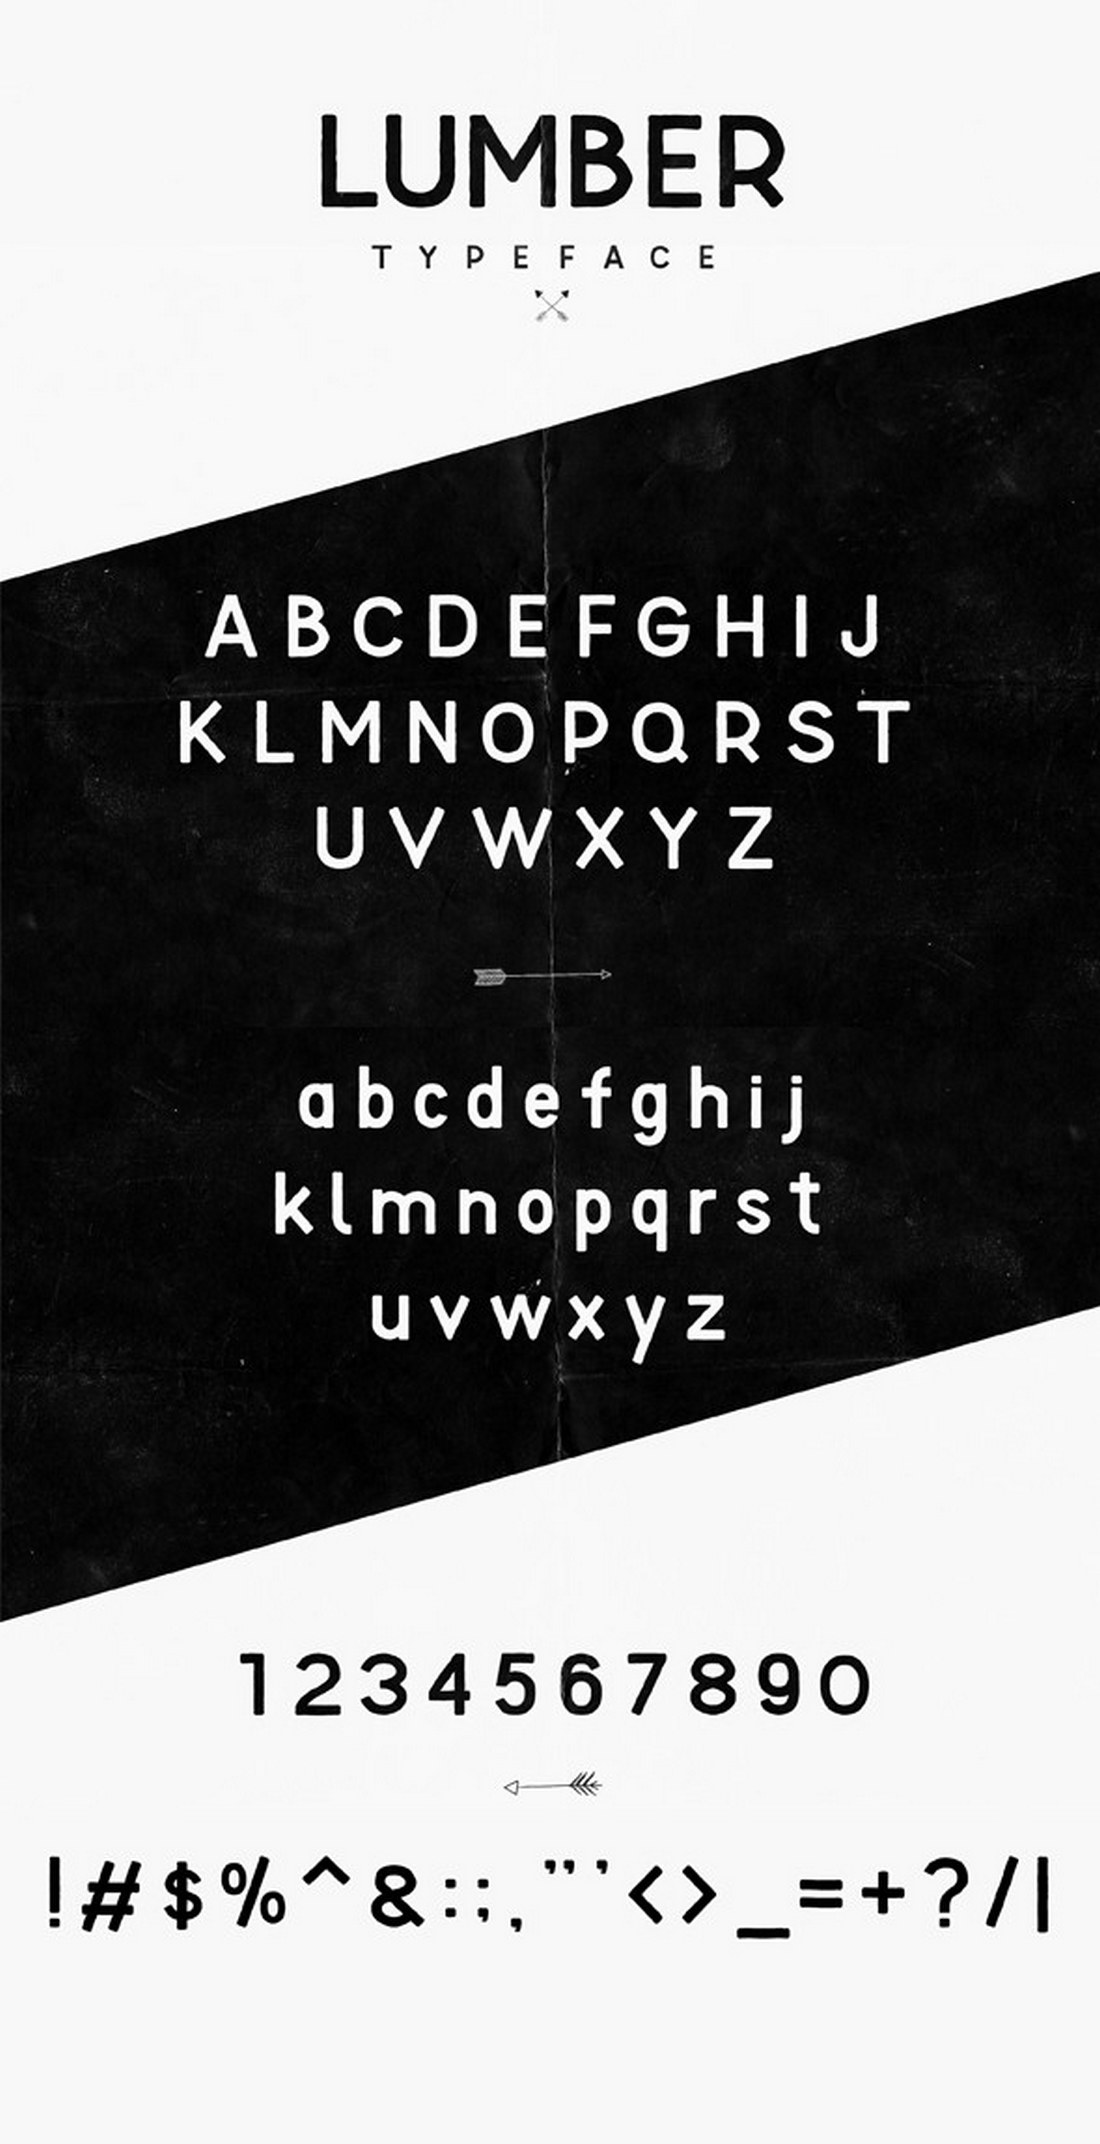 Lumber-Typeface 40+ Best Number Fonts for Displaying Numbers design tips